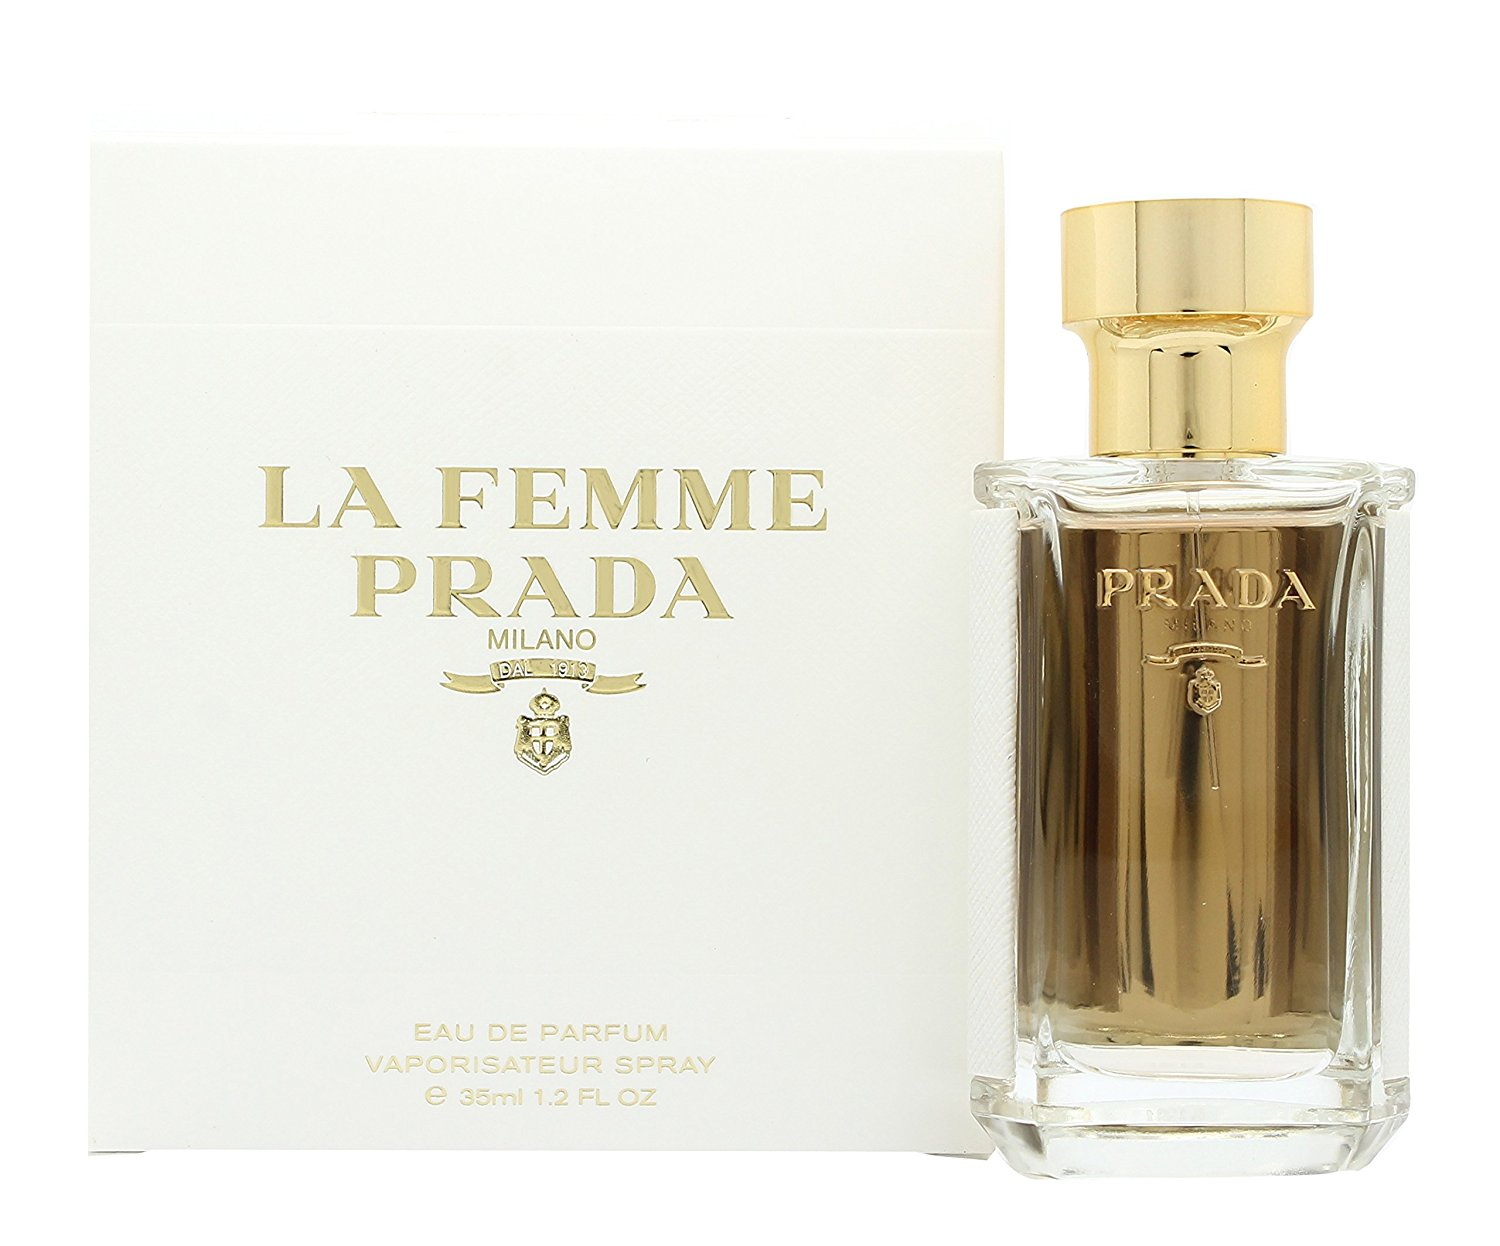 71ed68c337d20c Prada La Femme Eau de Parfum 35ml EDP Spray – SoLippy